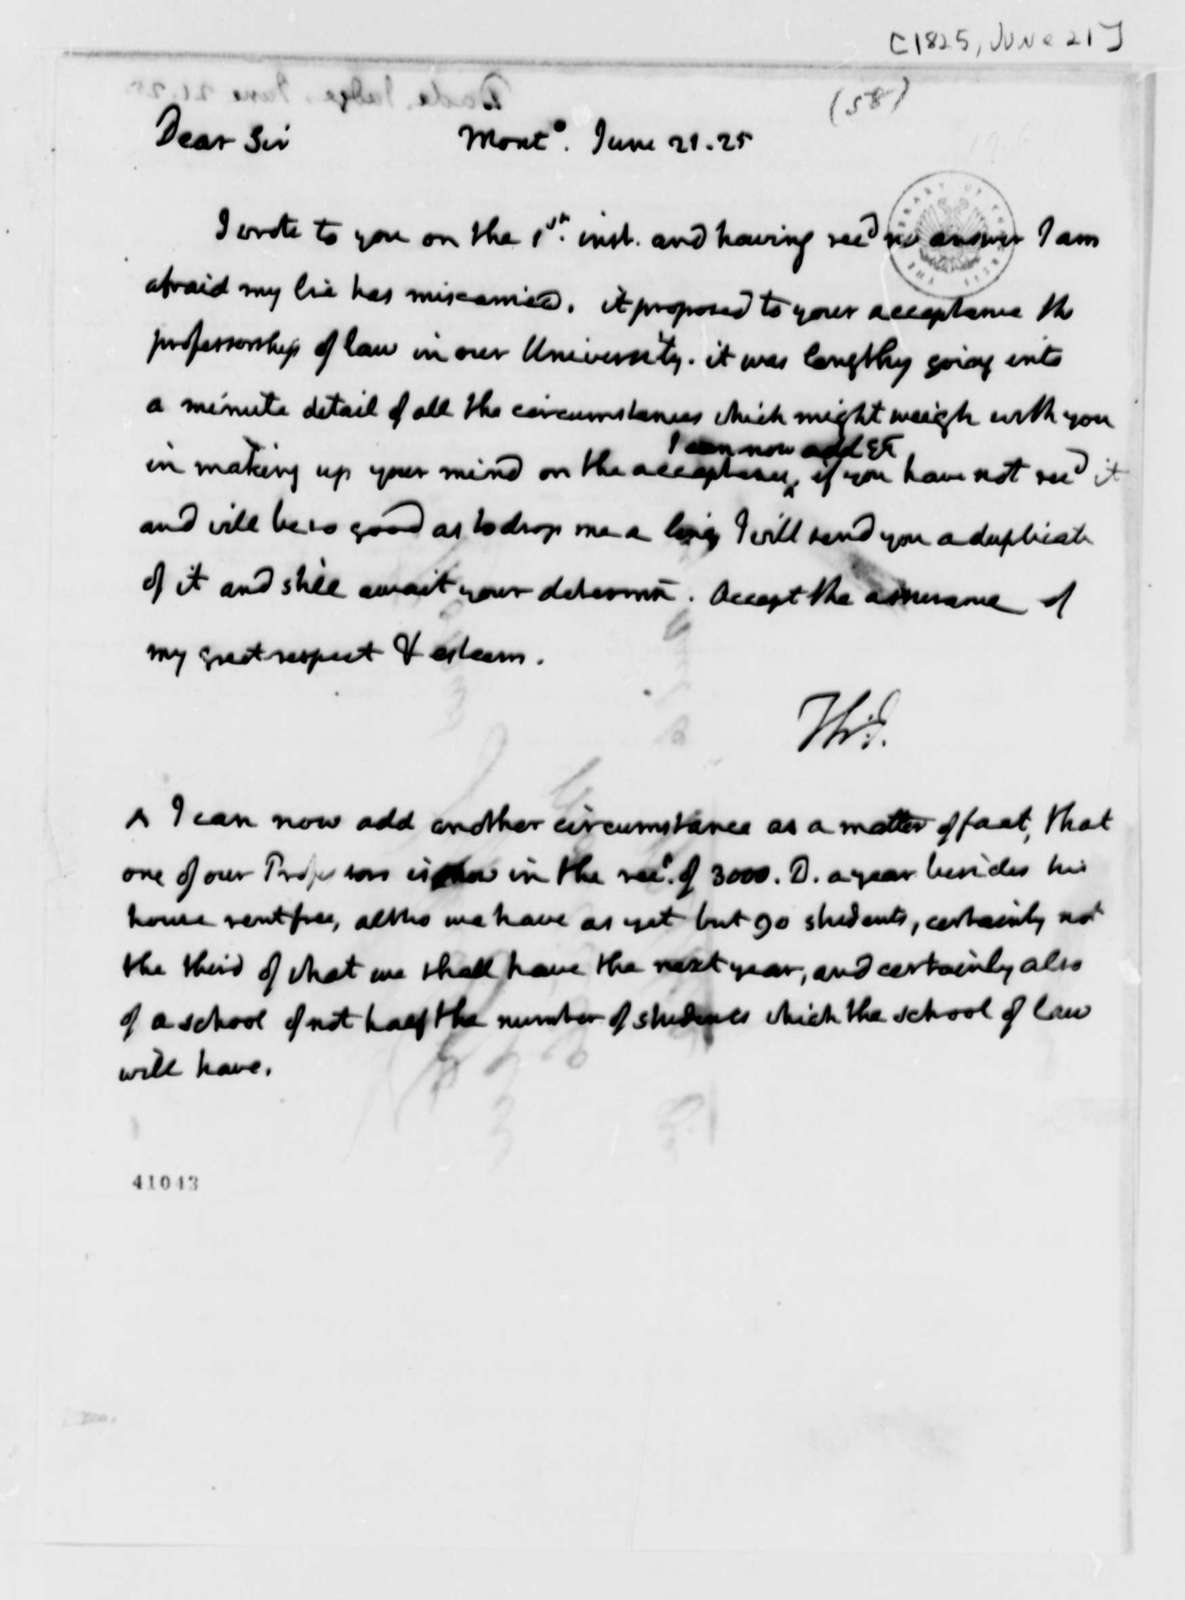 Thomas Jefferson to William A. G. Dade, June 21, 1825